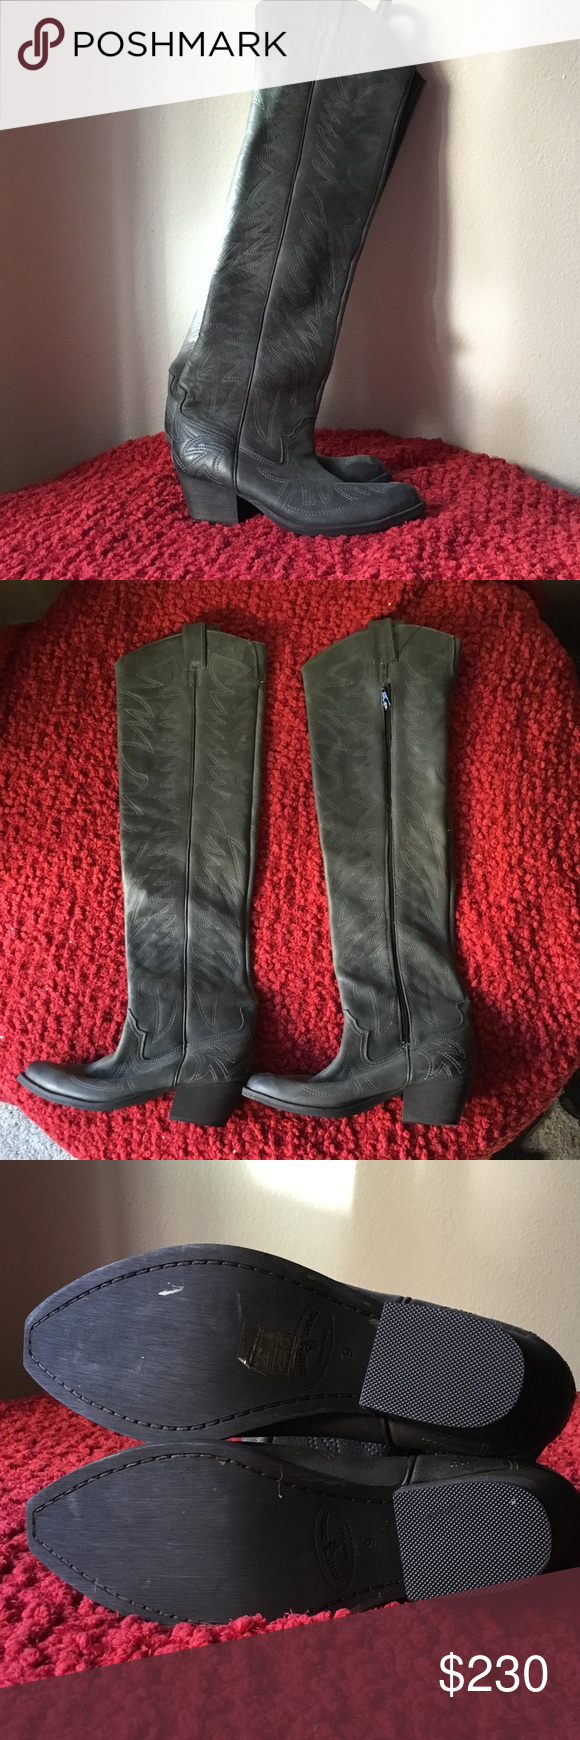 5bbddd2fa38 Jeffrey Campbell slither in charcoal New!Jeffrey Campbell s leather over  the knee boots with the flame stitch. Distressed leather over the knee  cowboy boots ...